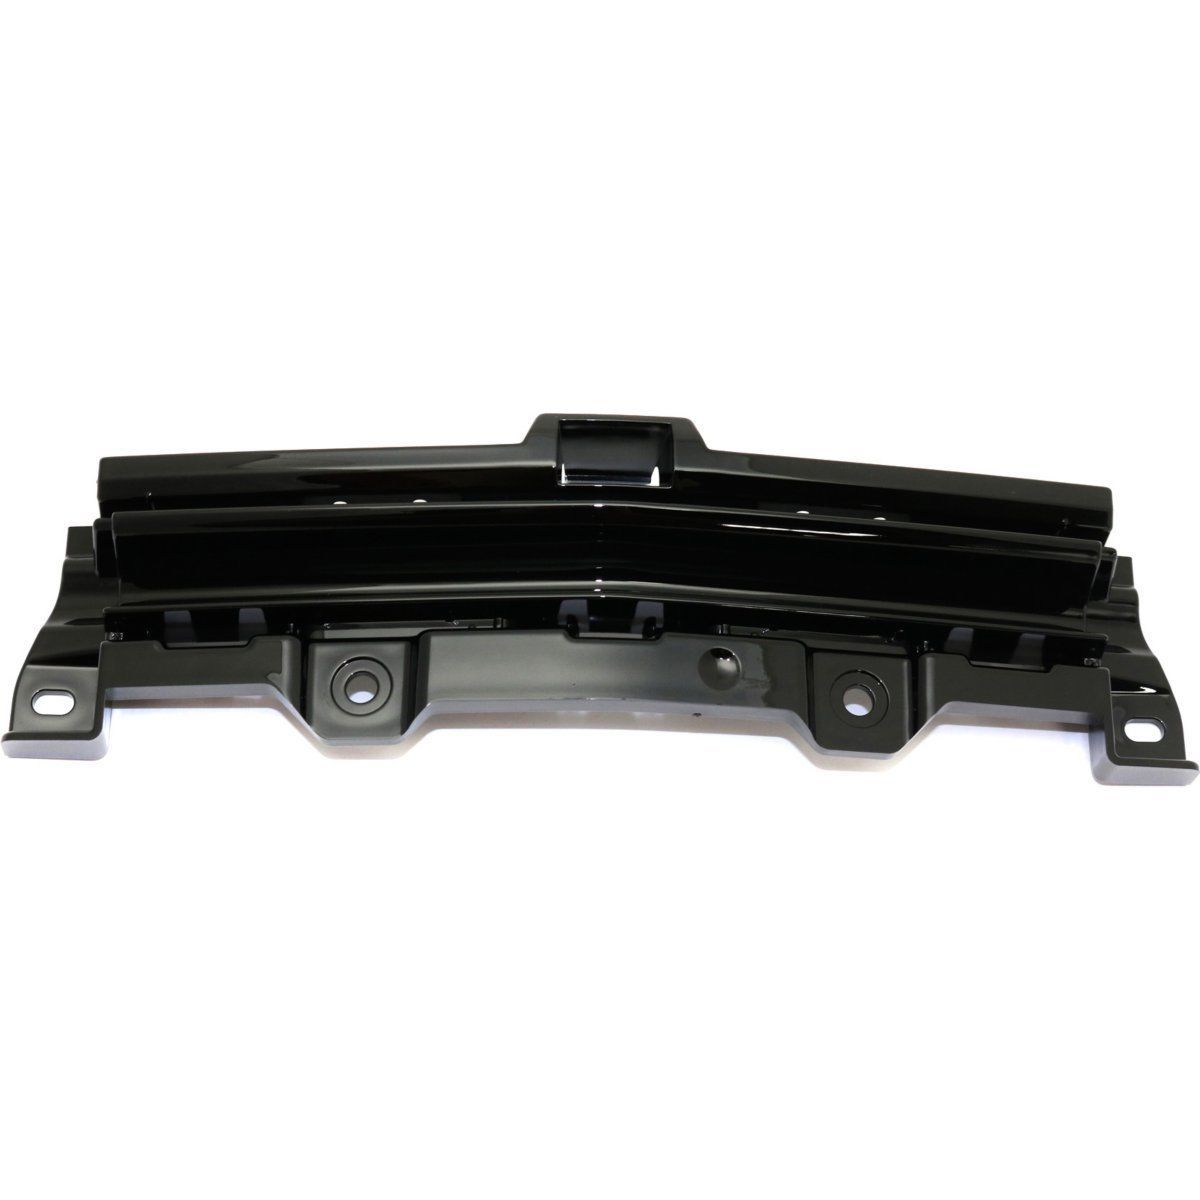 2015-2017 Acura Tlx 2.4L 3.5L Bumper Cover Trim And